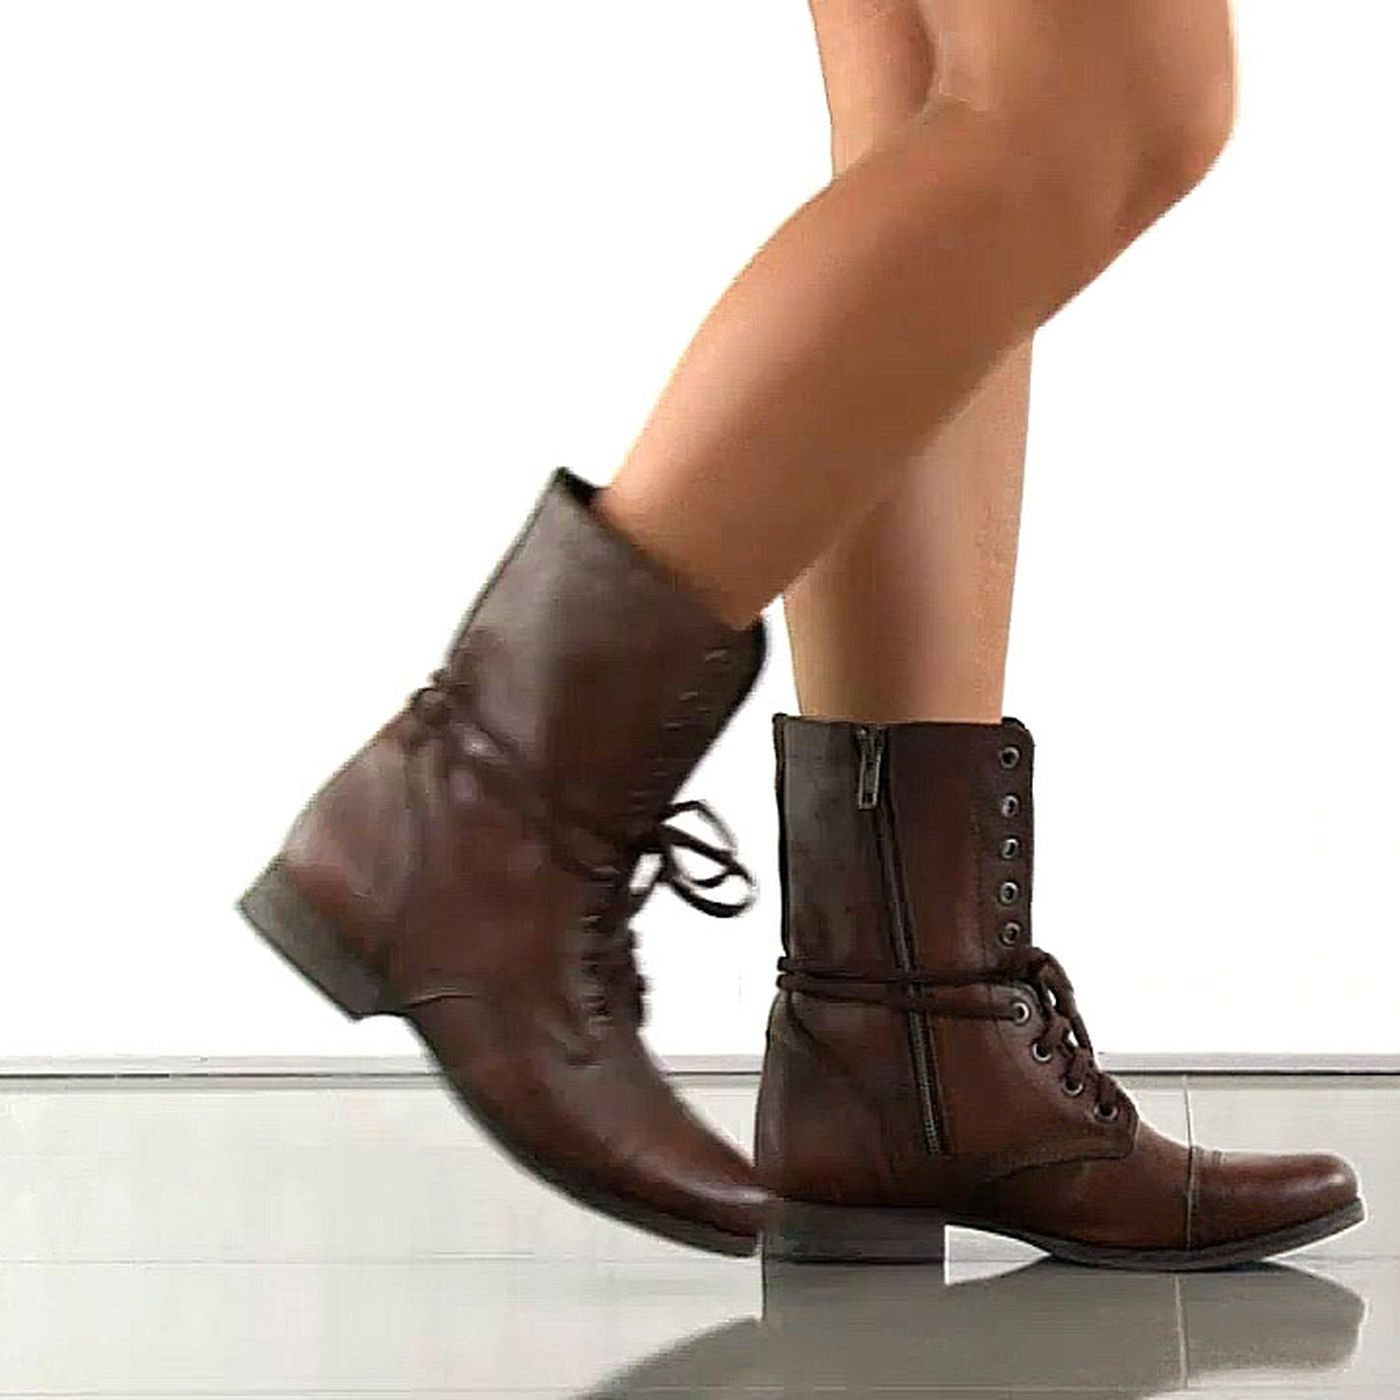 94a372b4542 If You Buy One Pair of Combat Boots in Your Life, Make It These - Racked